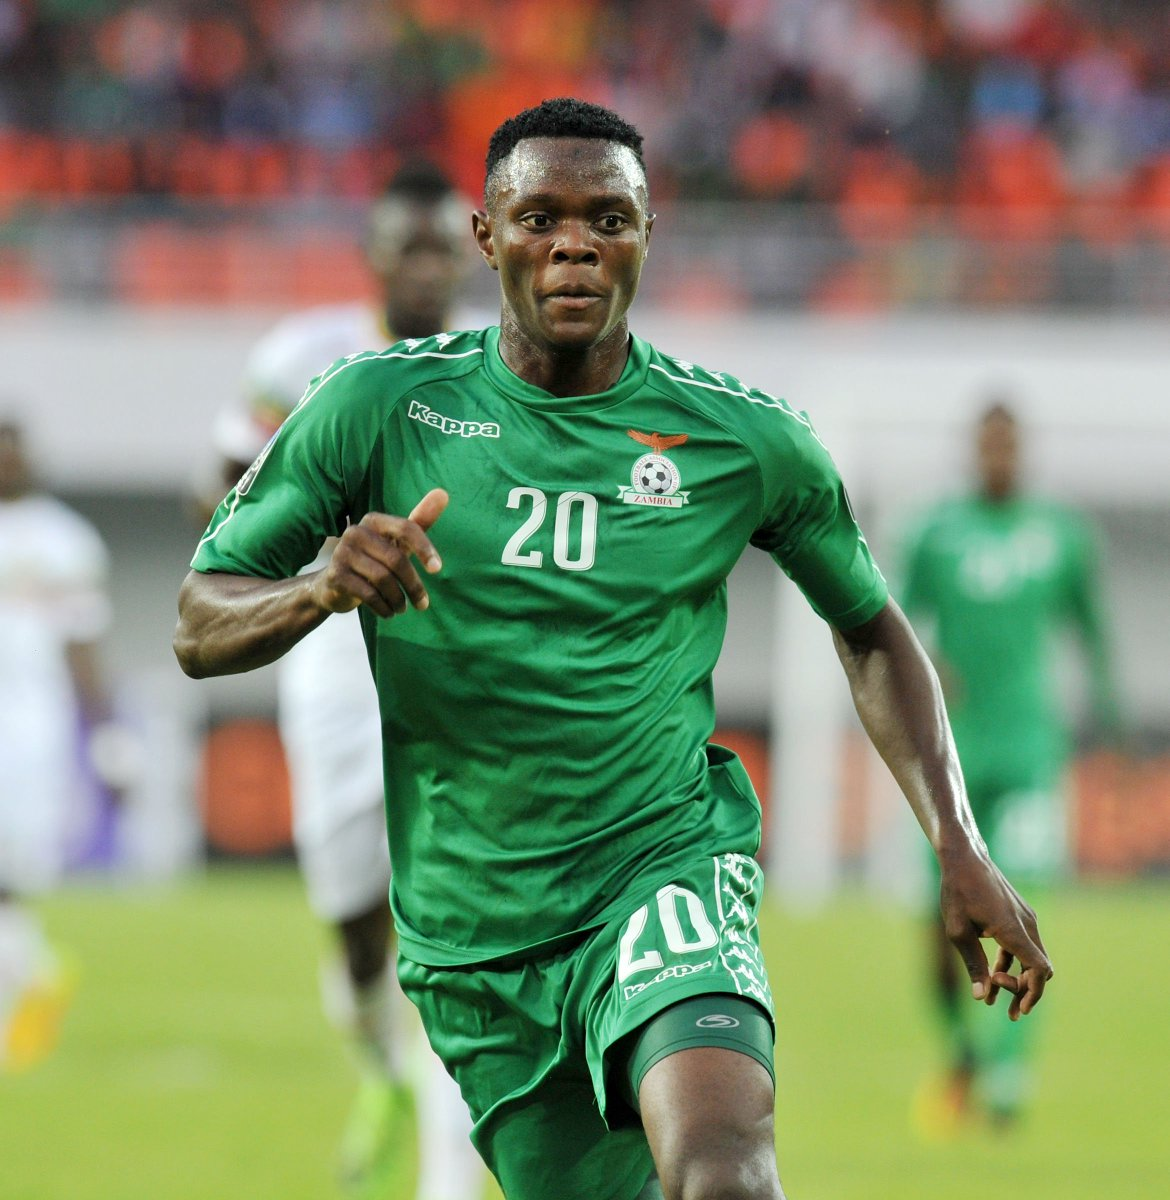 Chipolopolo Star Patson Daka To Join Team In Abuja